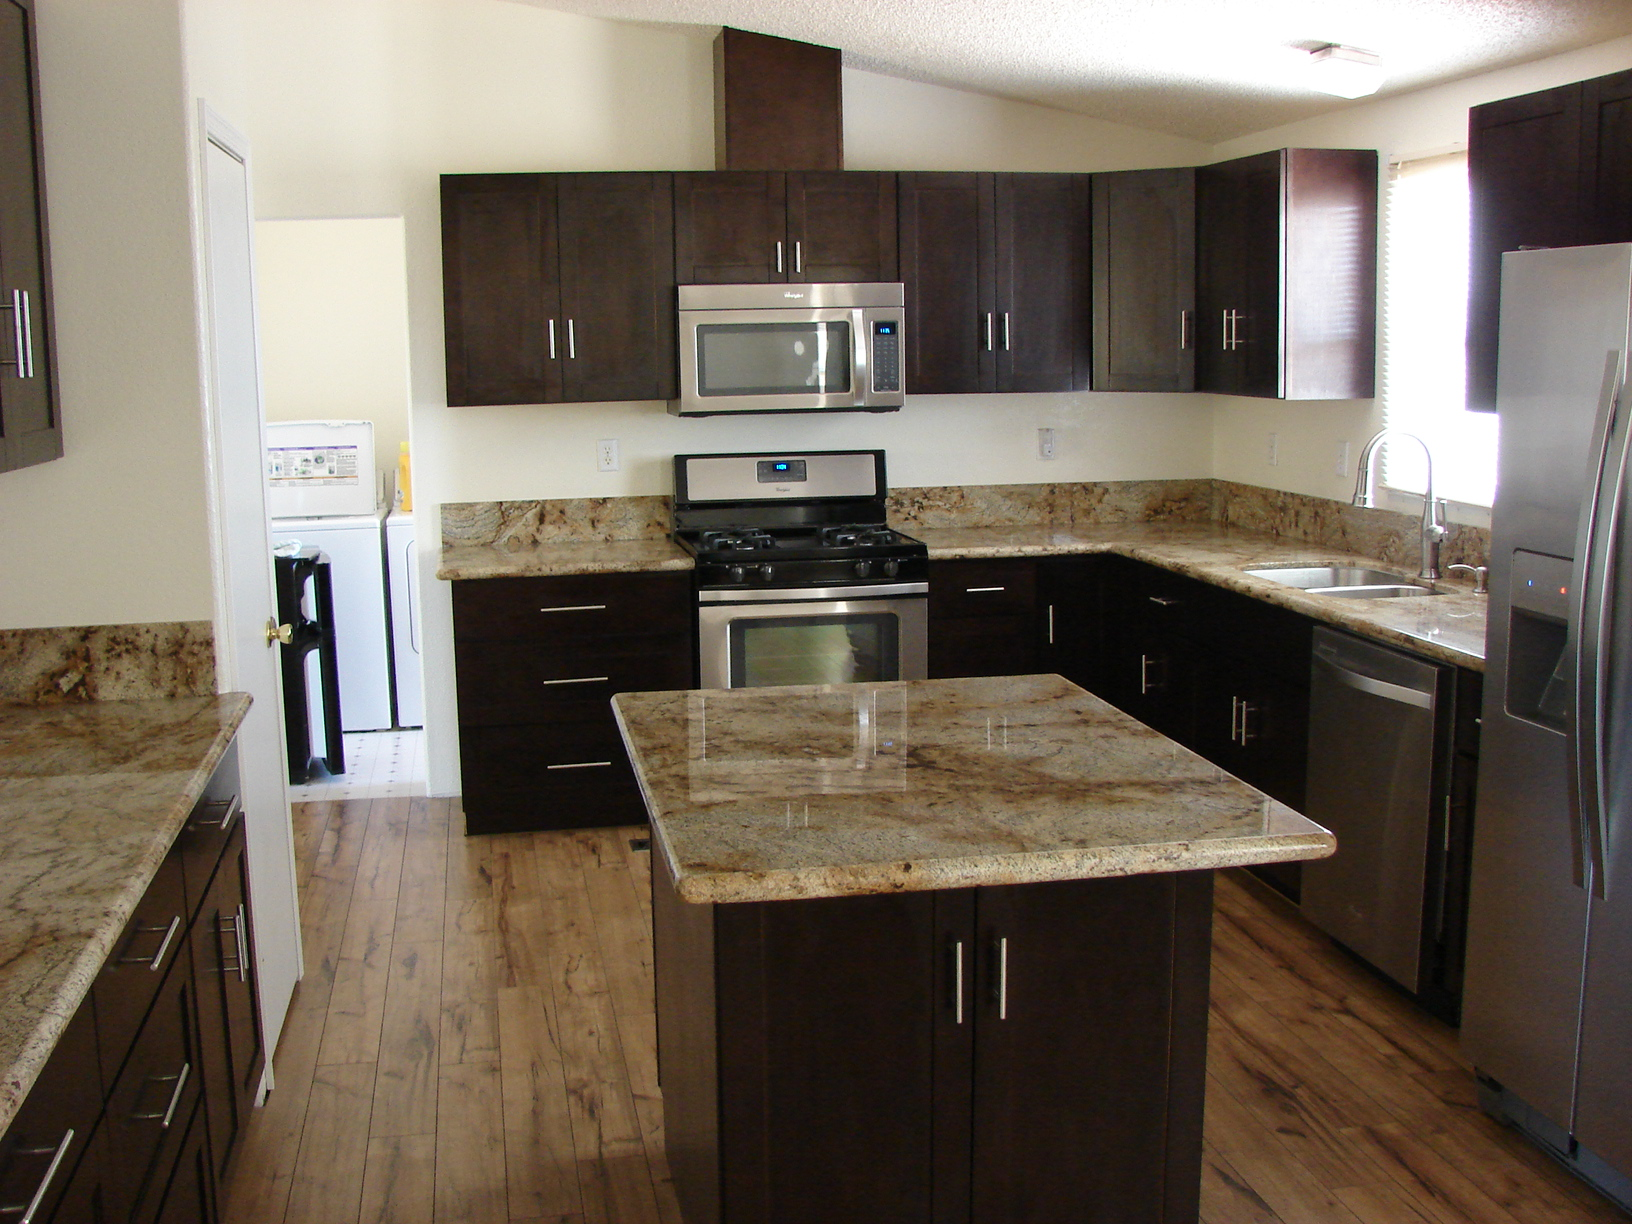 Cost Of Replacing Countertops Kitchen Tops Prices Home Design